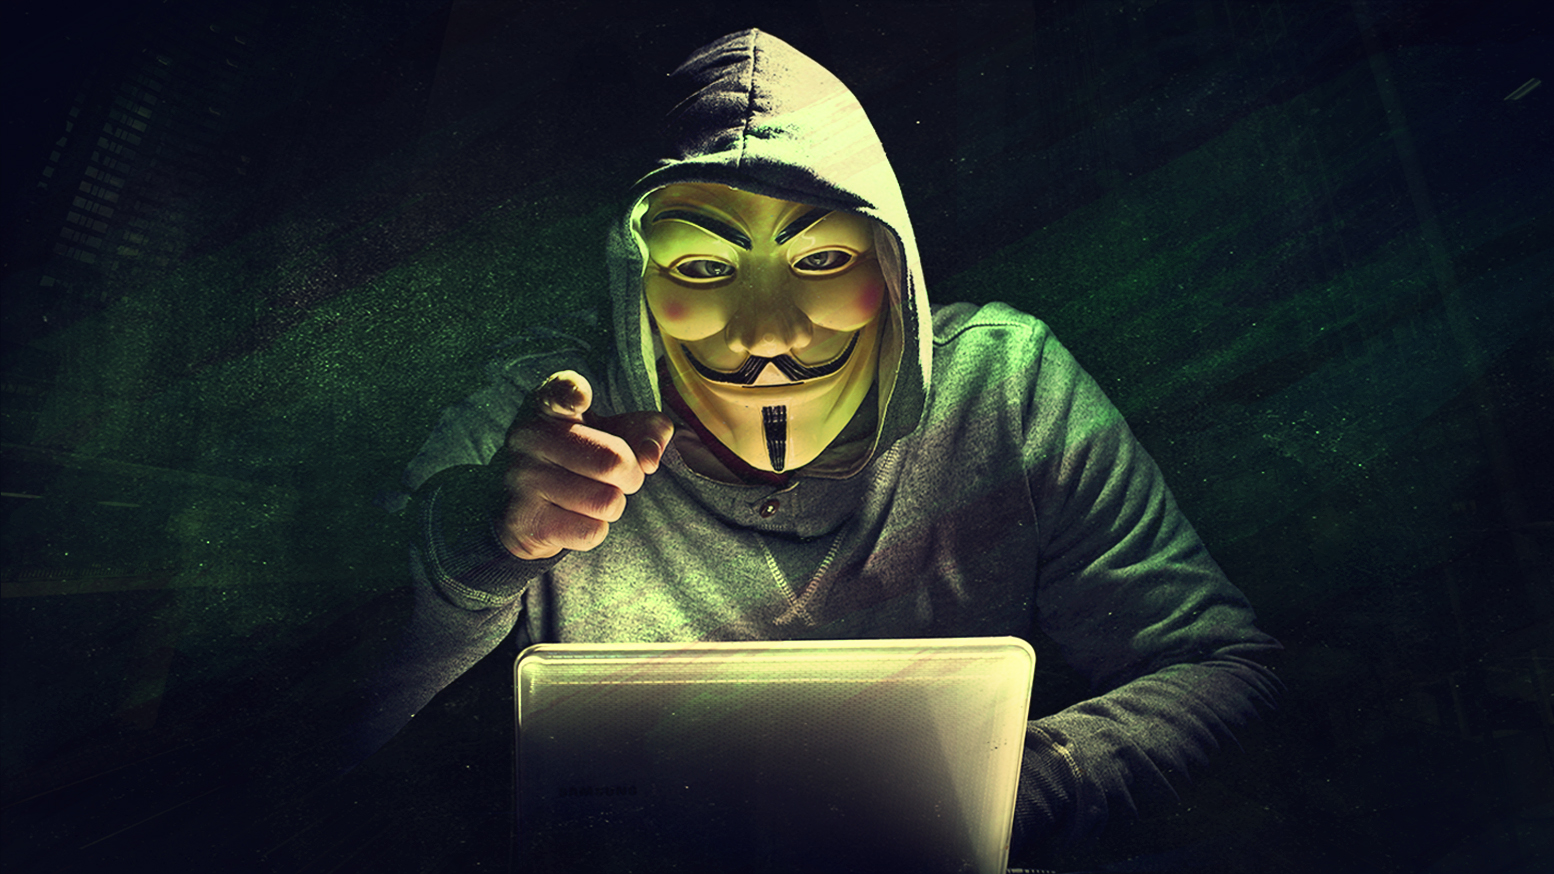 Anonymous member hacking